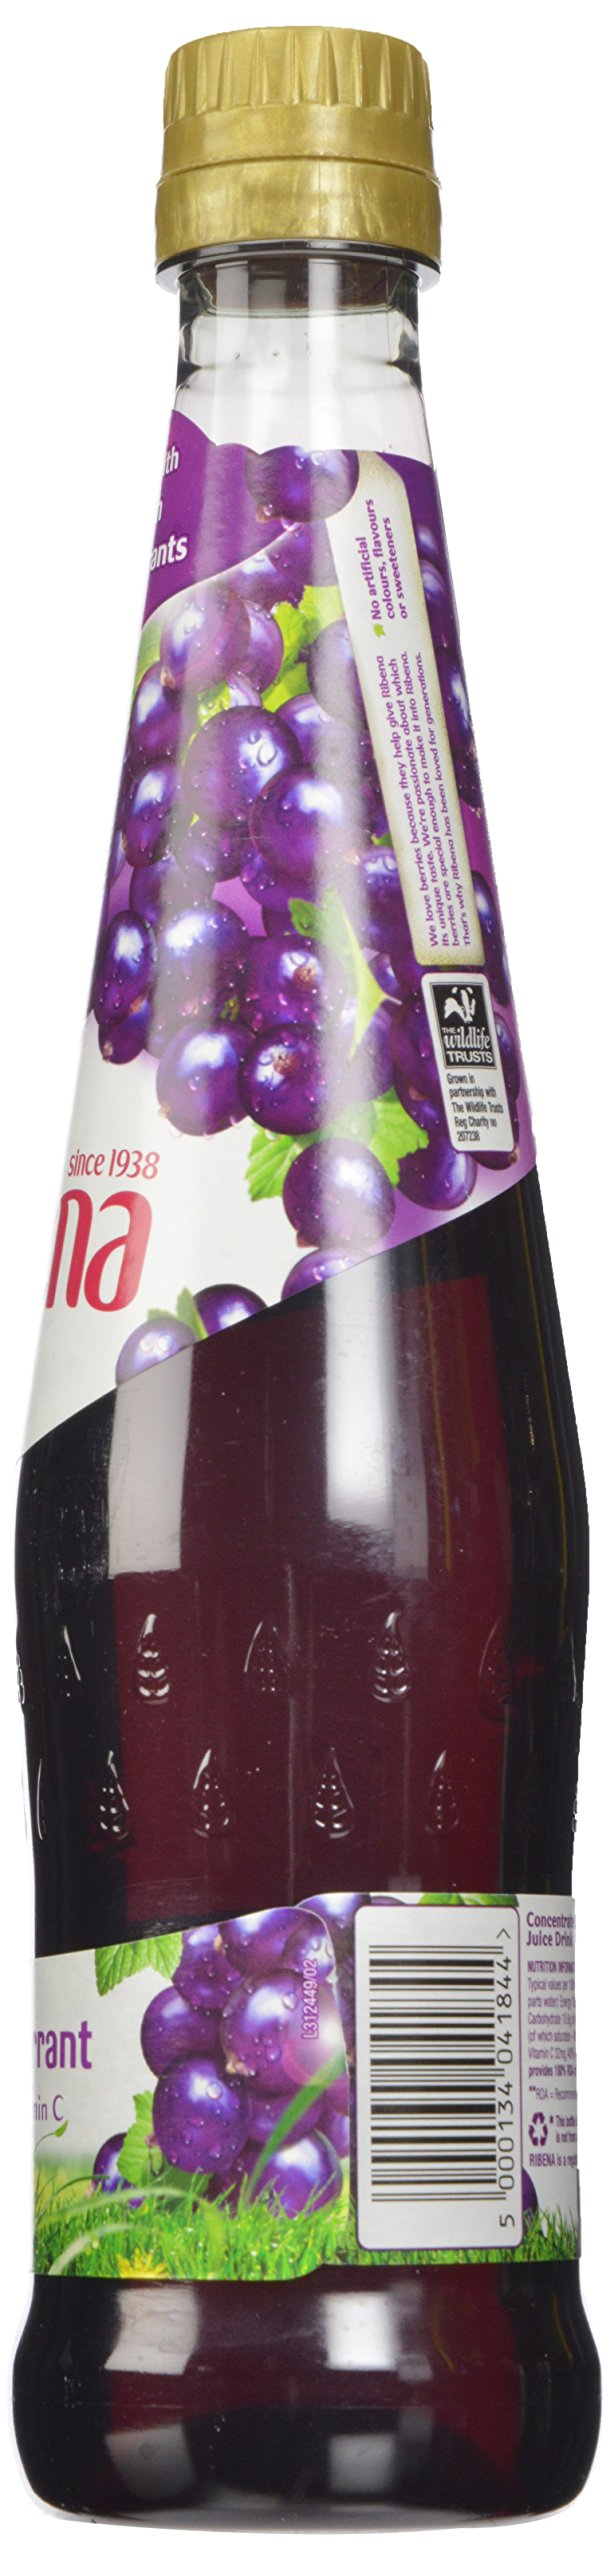 Ribena Original Blackcurrant Drink, 600 ml Bottle (Pack of 12) by Ribena (Image #6)